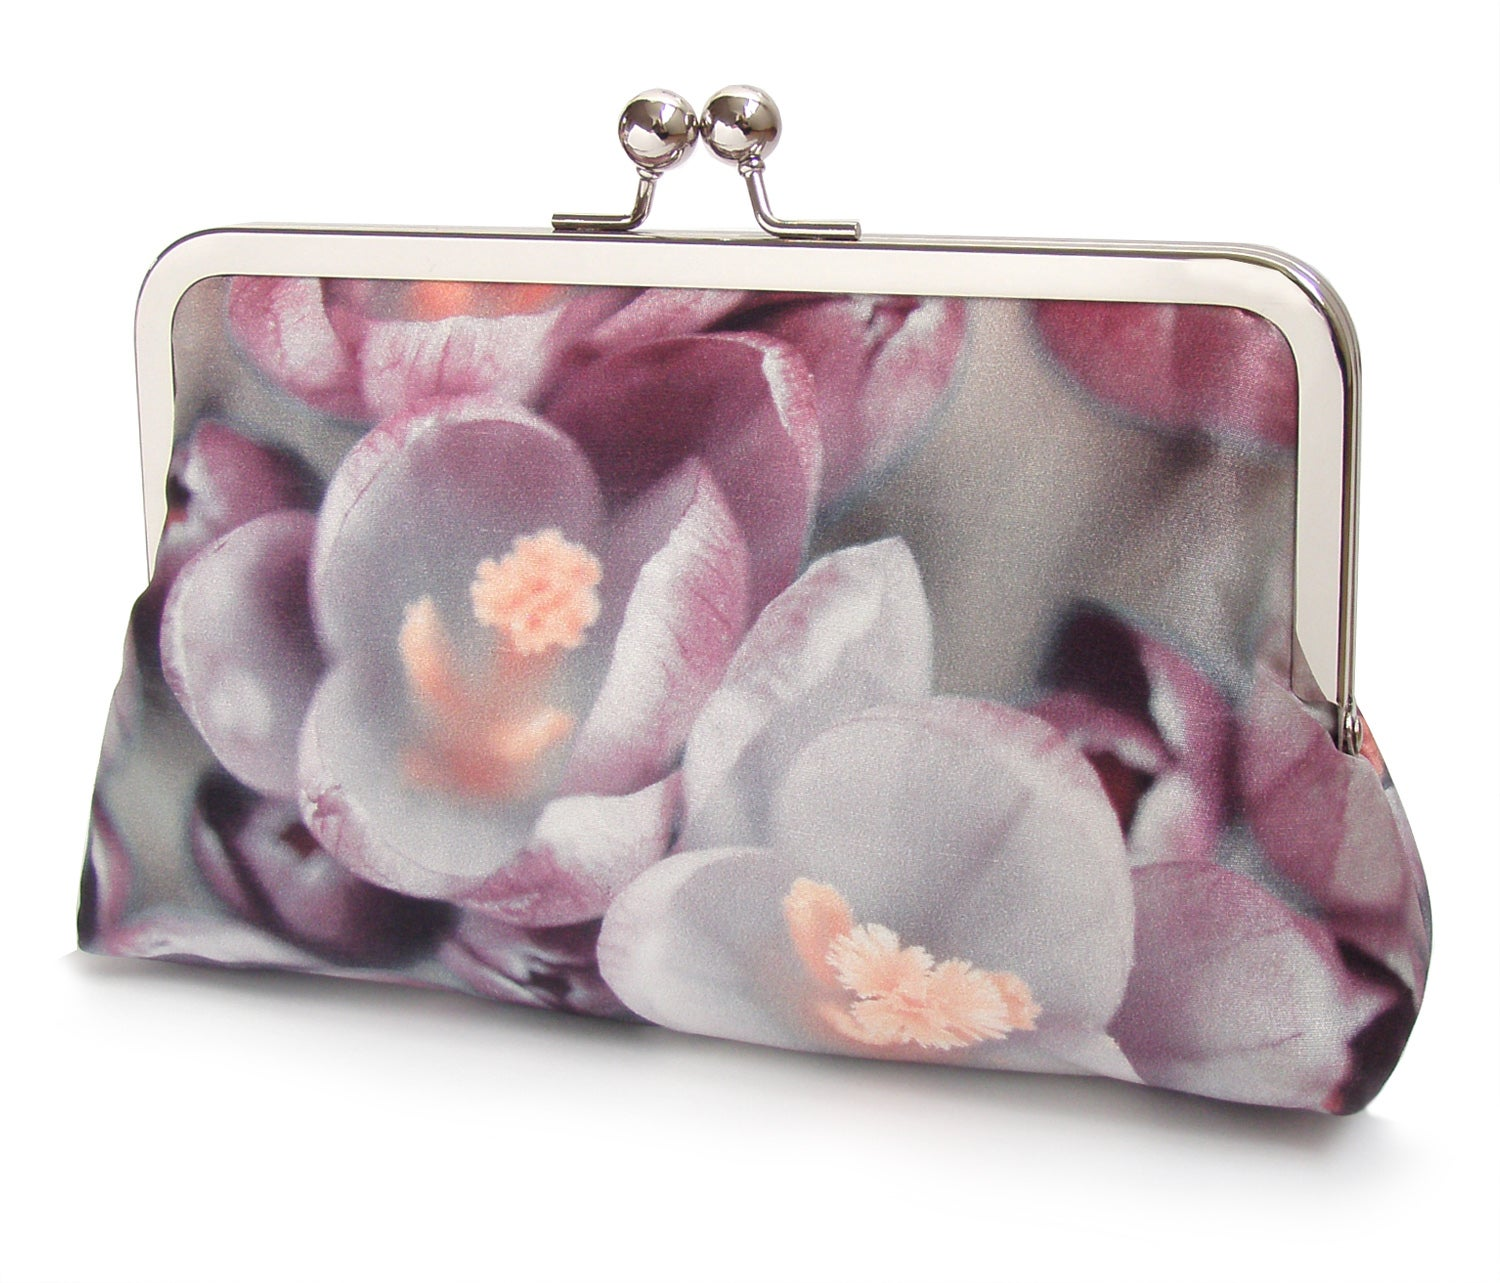 Image of Crocus flower clutch bag, pink silk purse